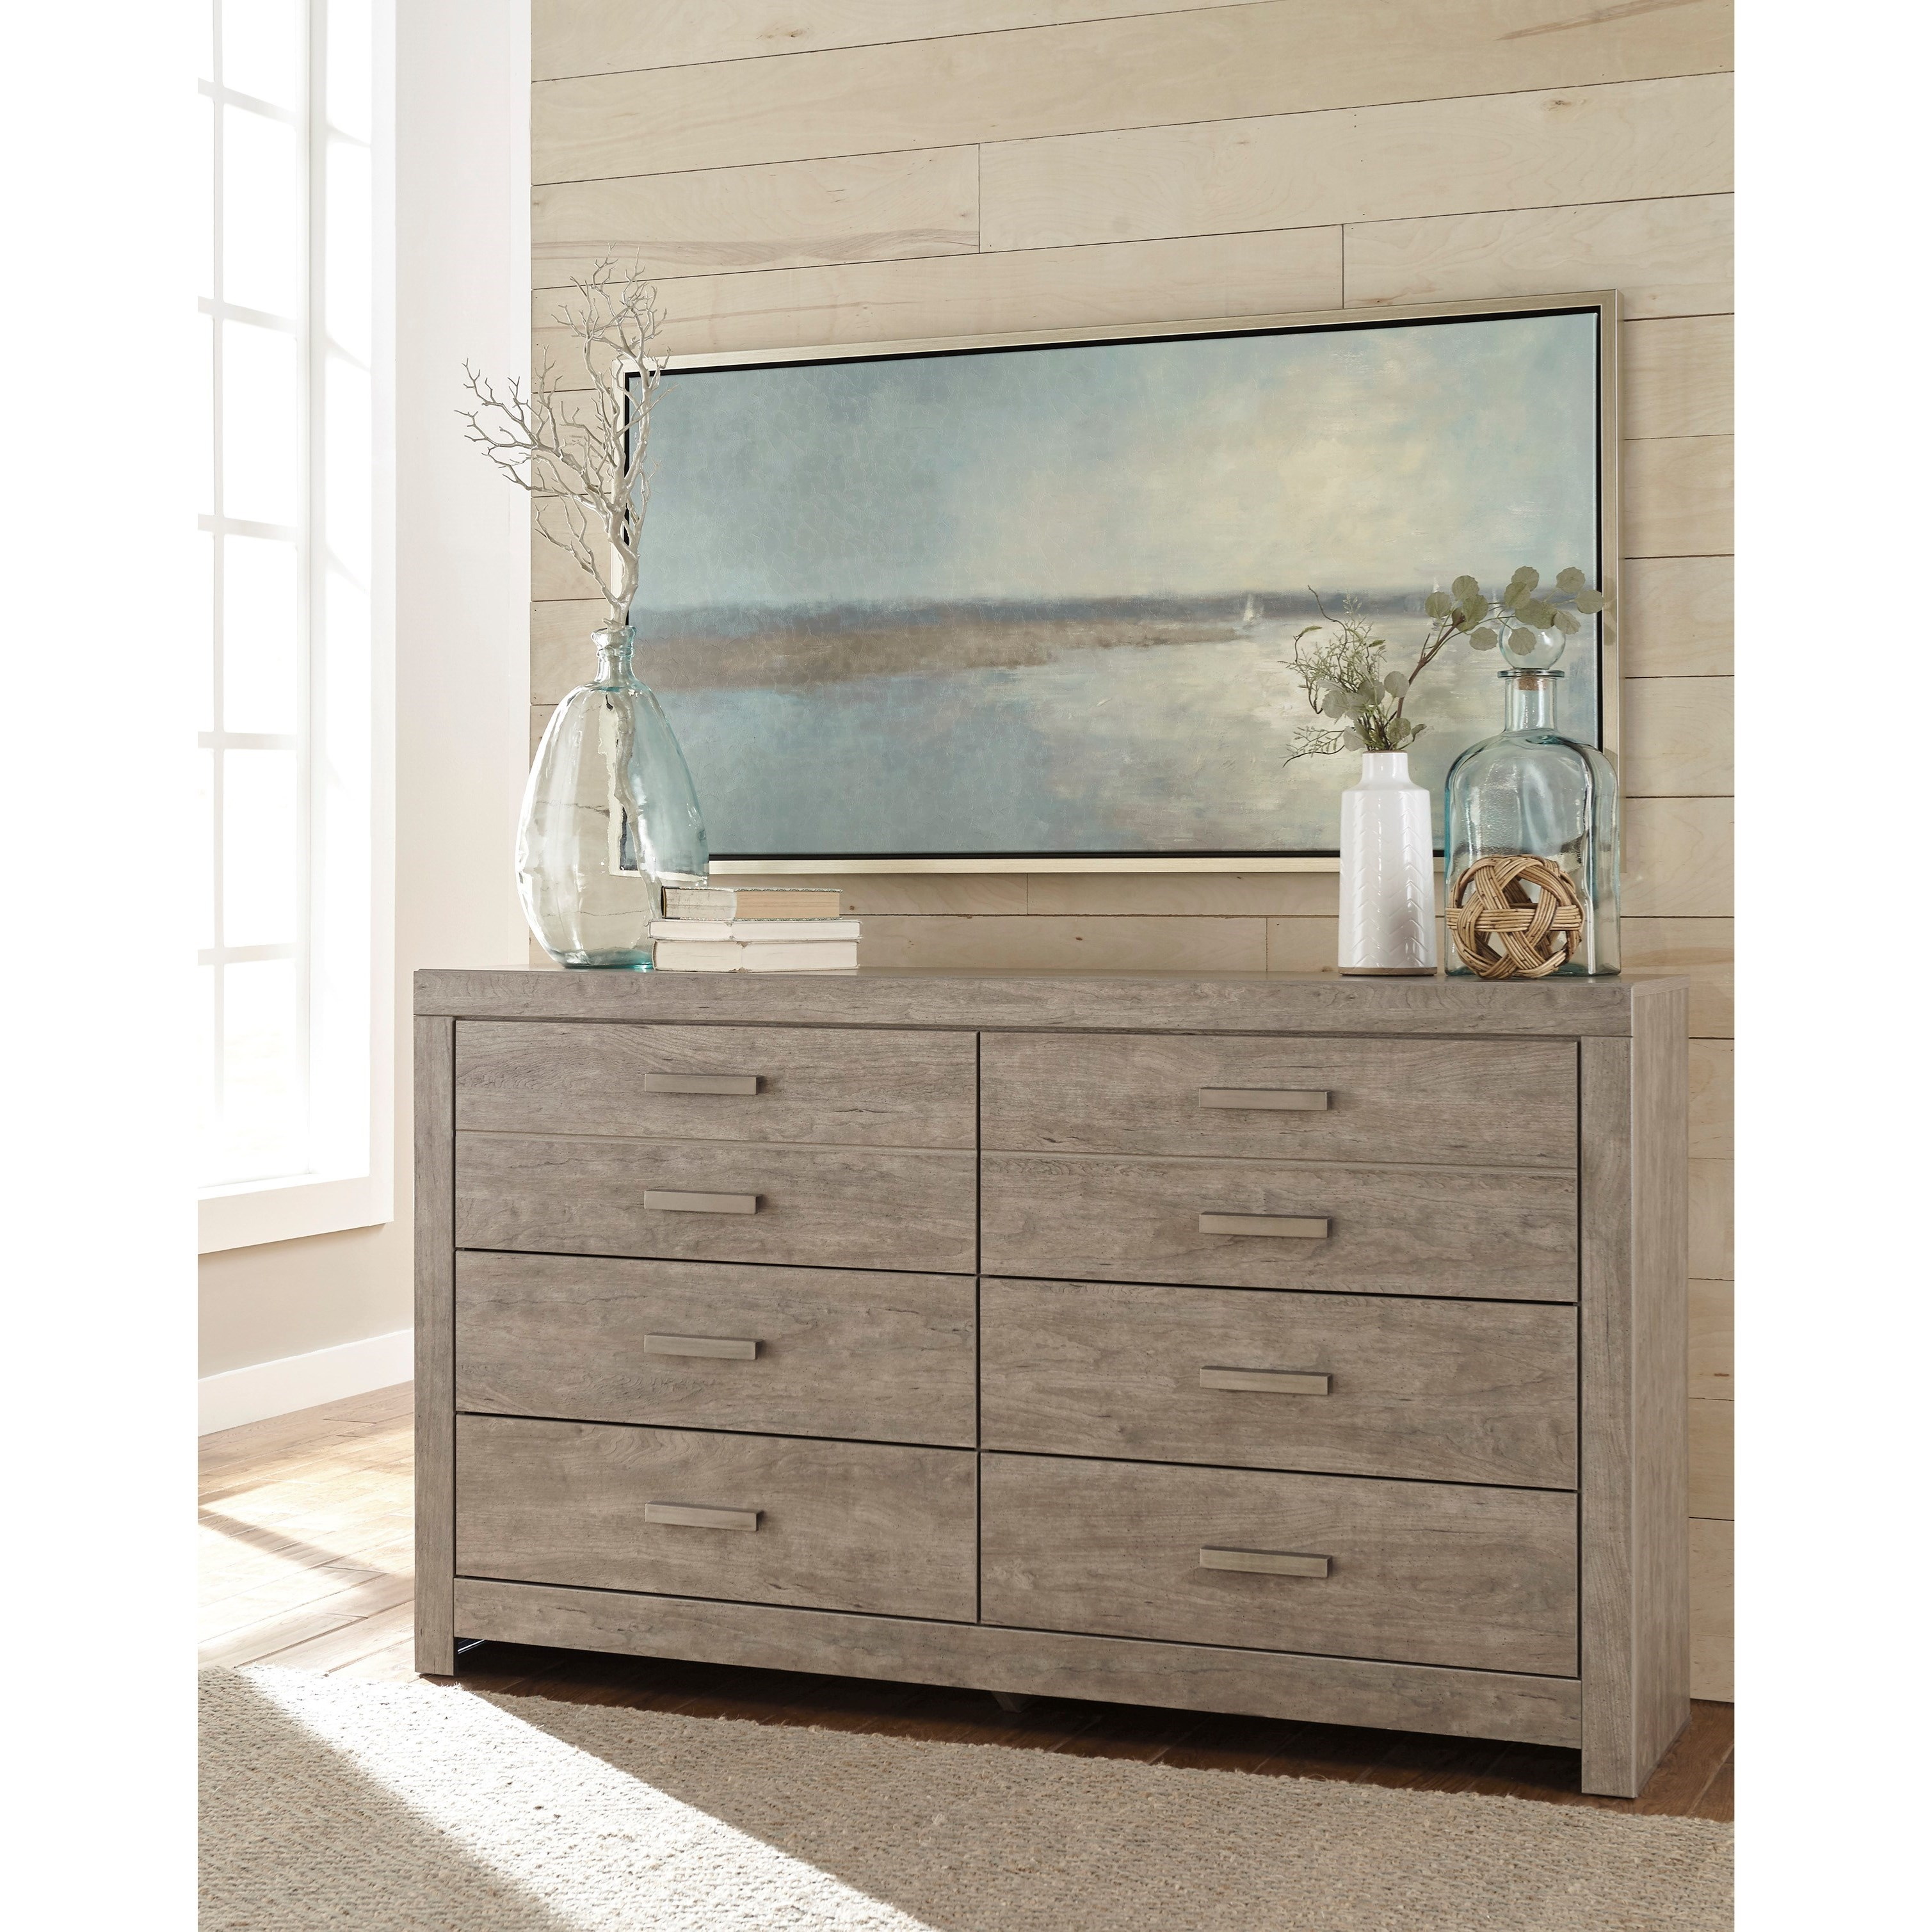 Culverbach Dresser by Signature Design by Ashley at Furniture Fair - North Carolina